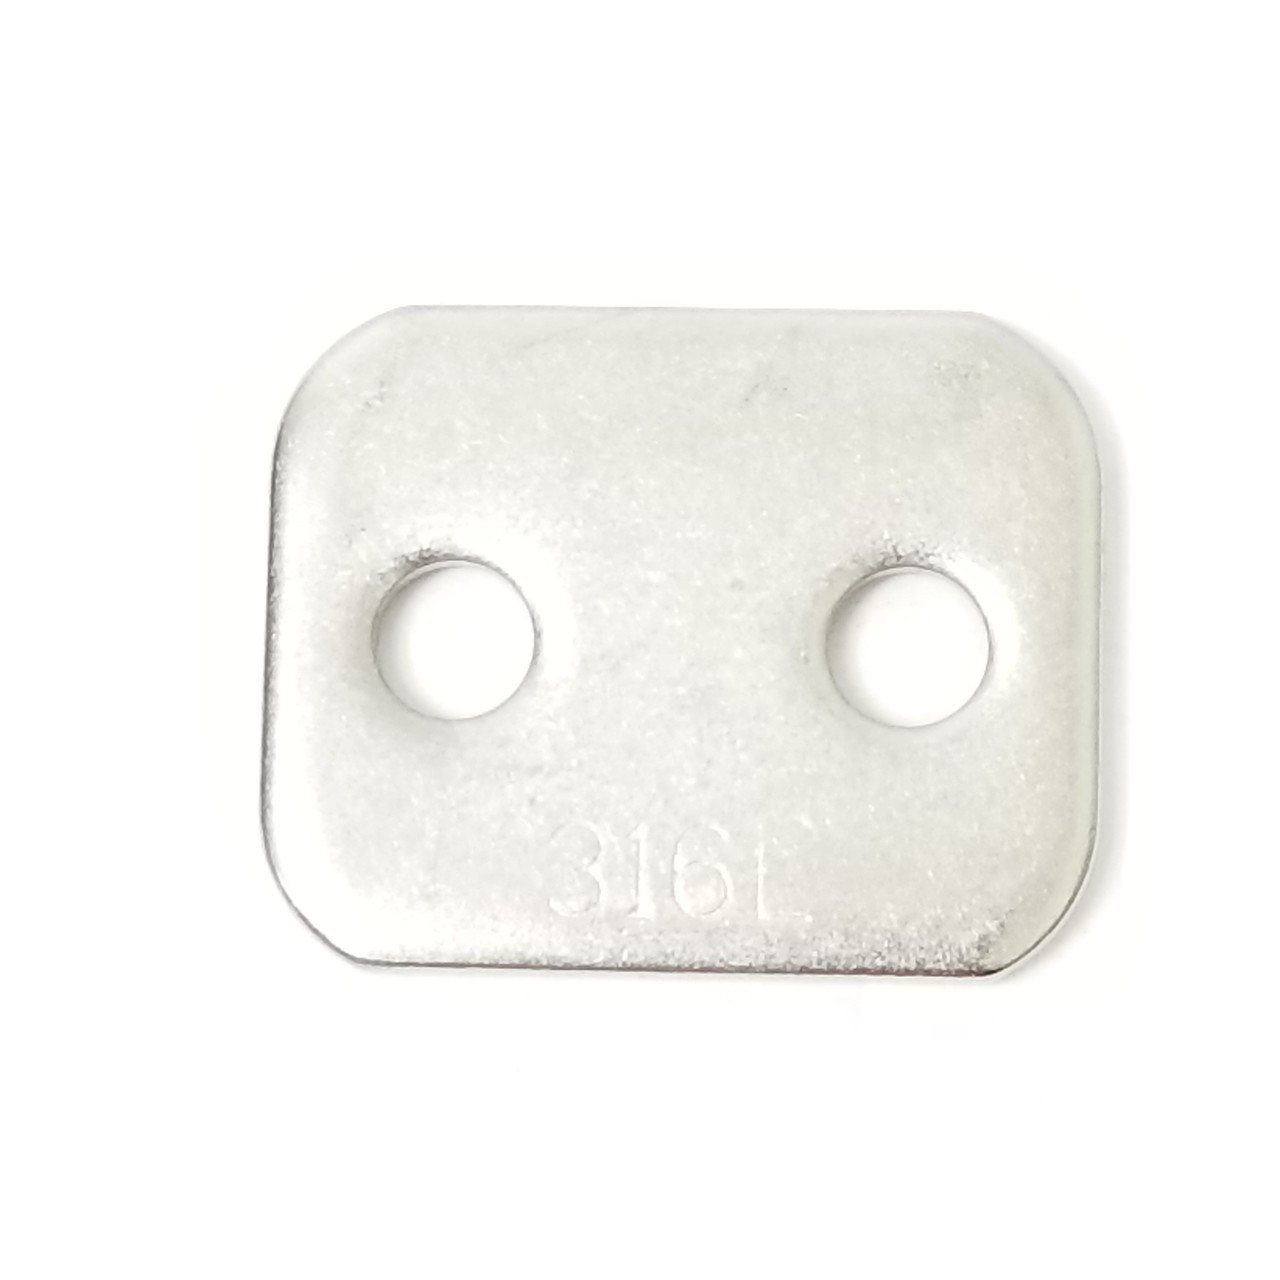 TP3316 Top plate